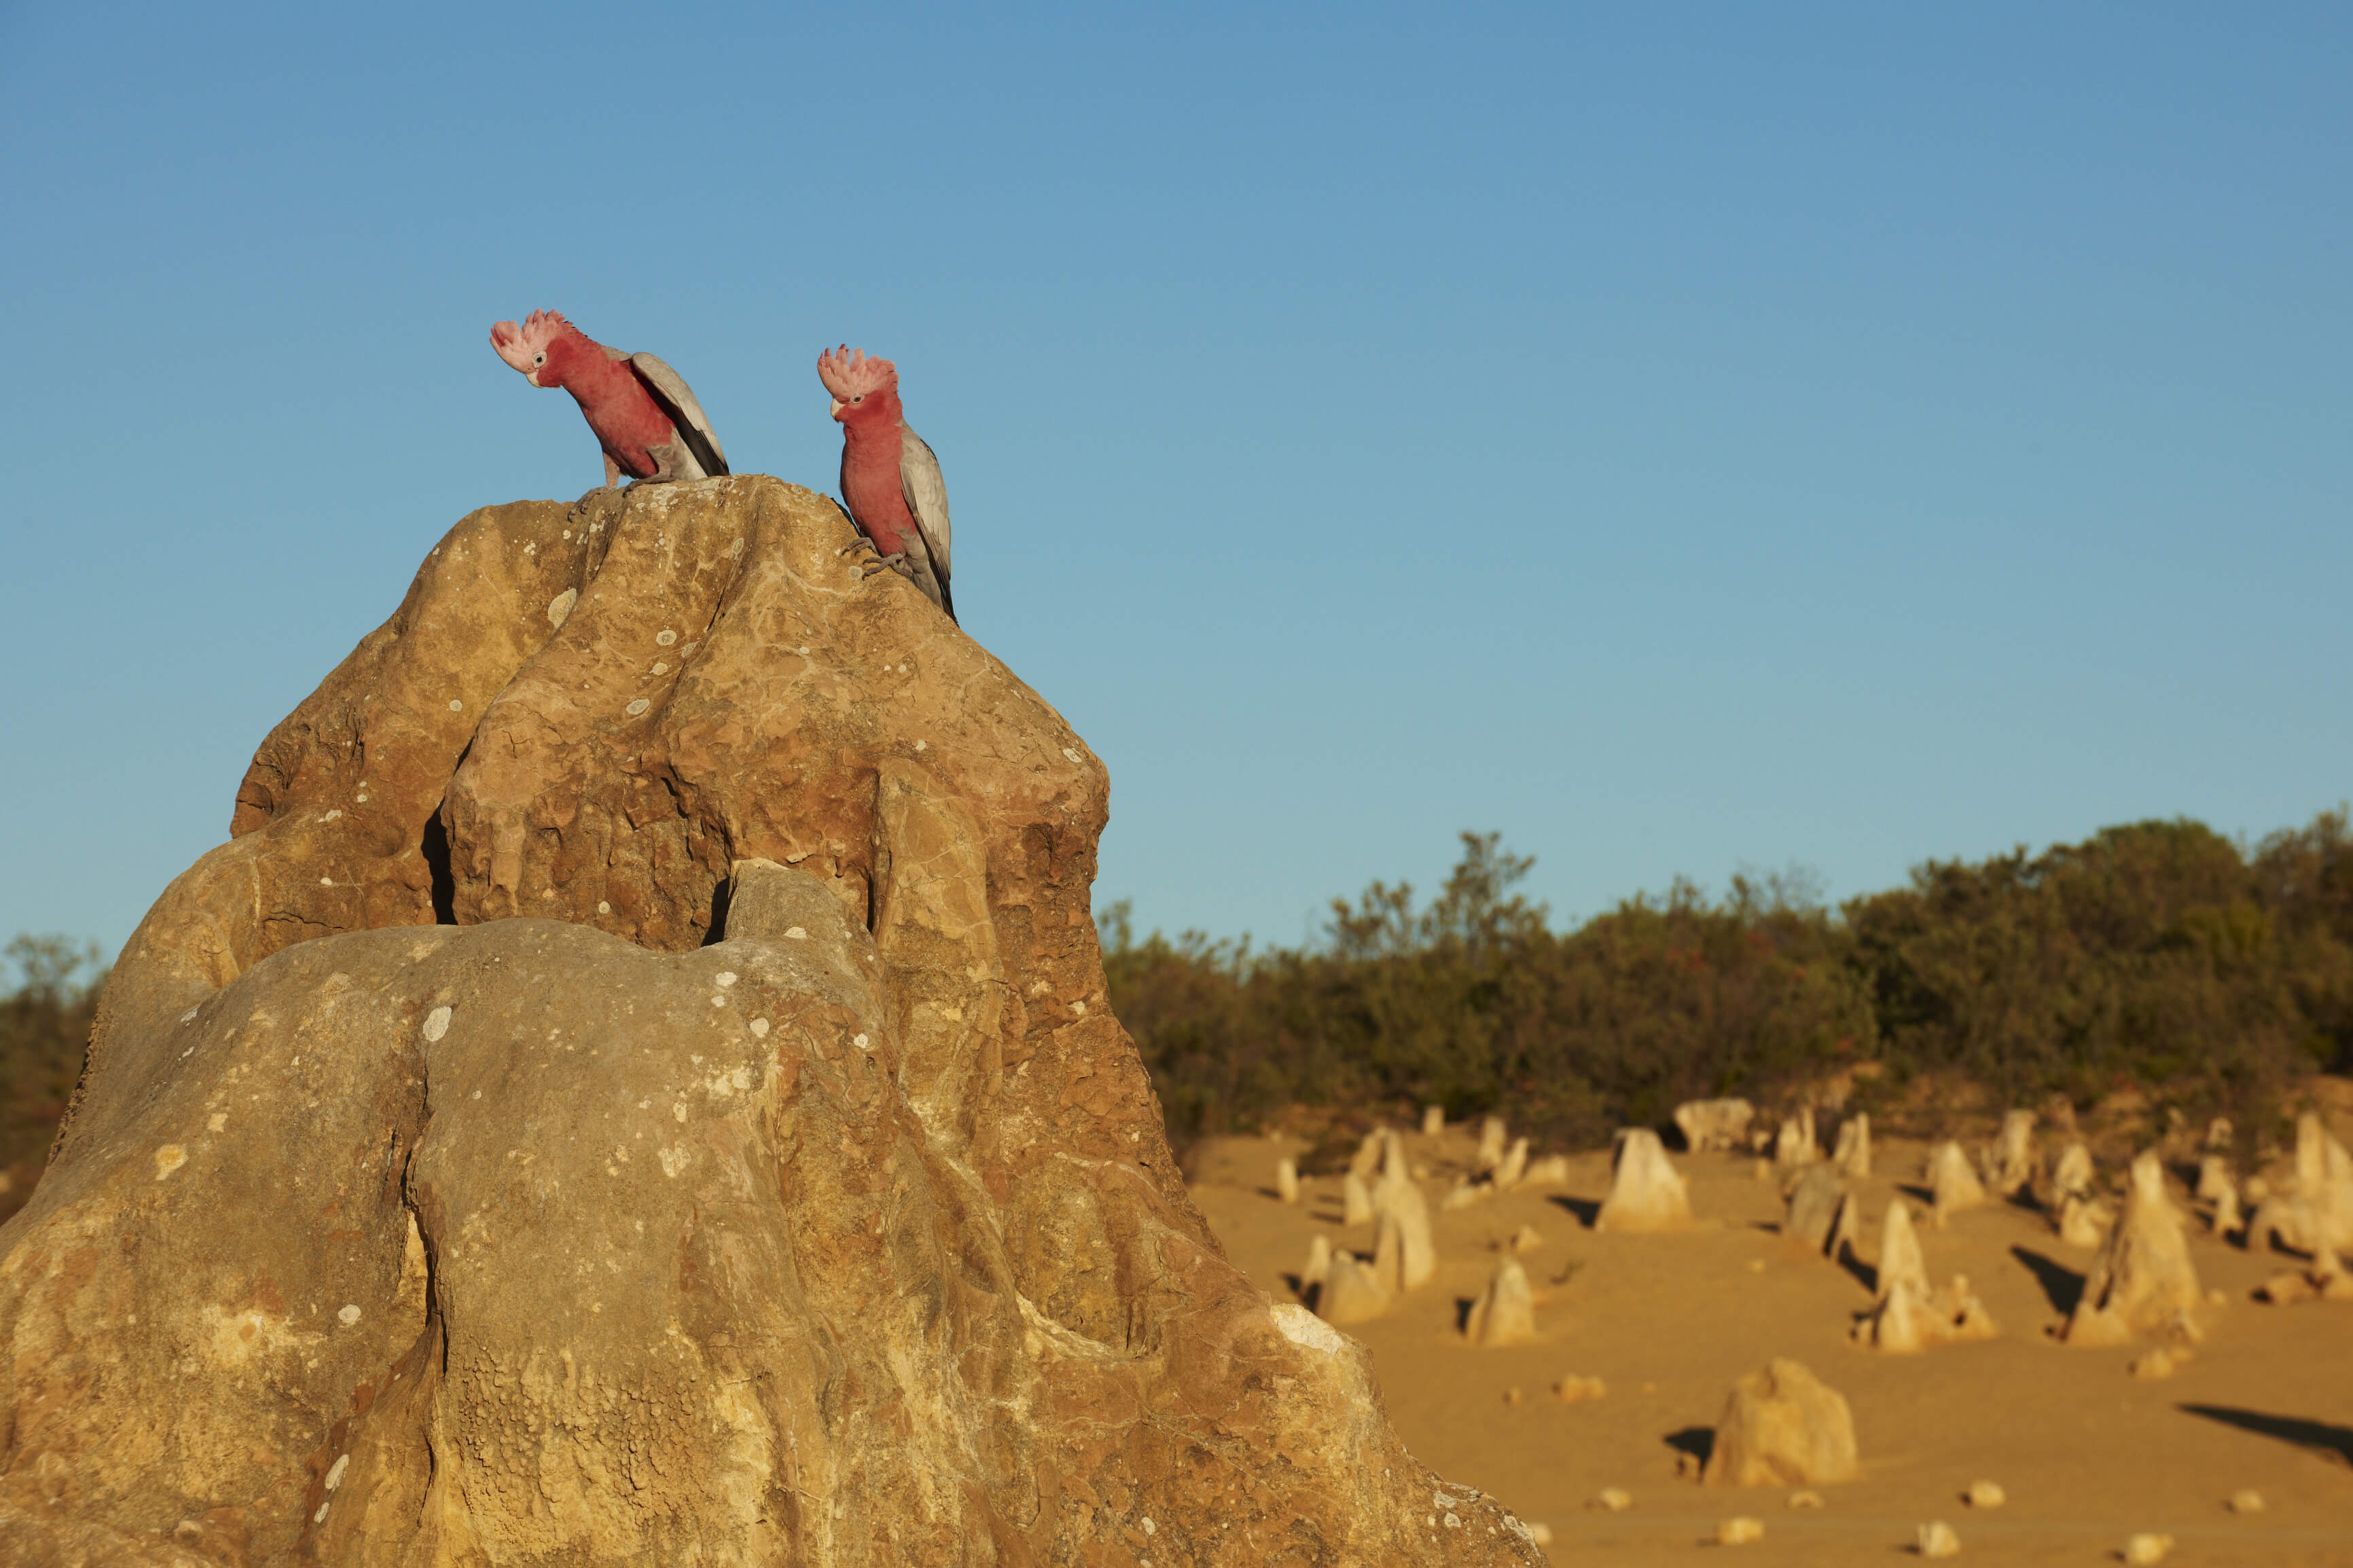 Pink and Grey Galahs (Eolophus roseicapilla) in The Pinnacles, located in the Nambung National Park